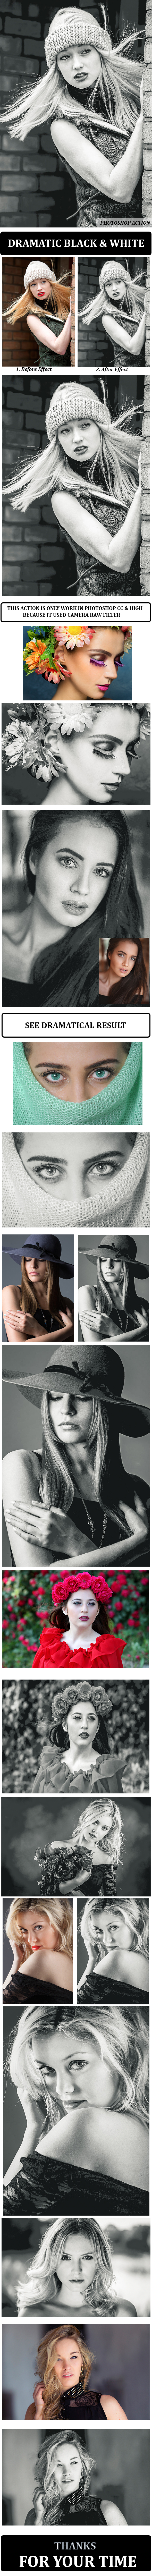 Dramatic Black and White :: Photoshop Action - Photoshop Add-ons